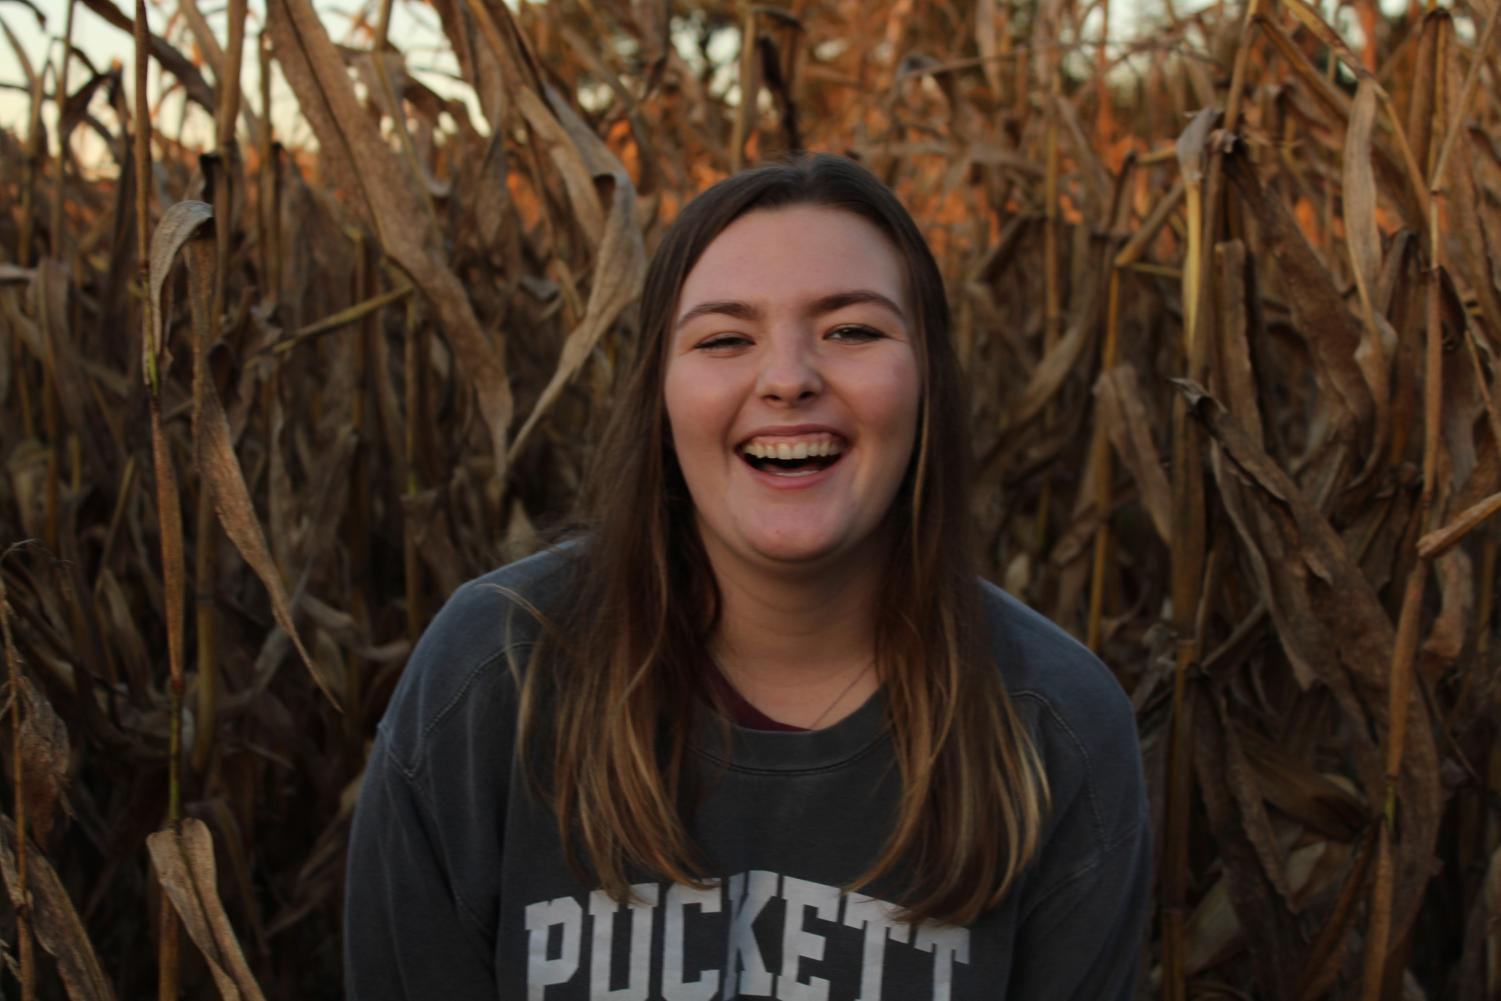 Gabby smiles for the camera in the corn fields.